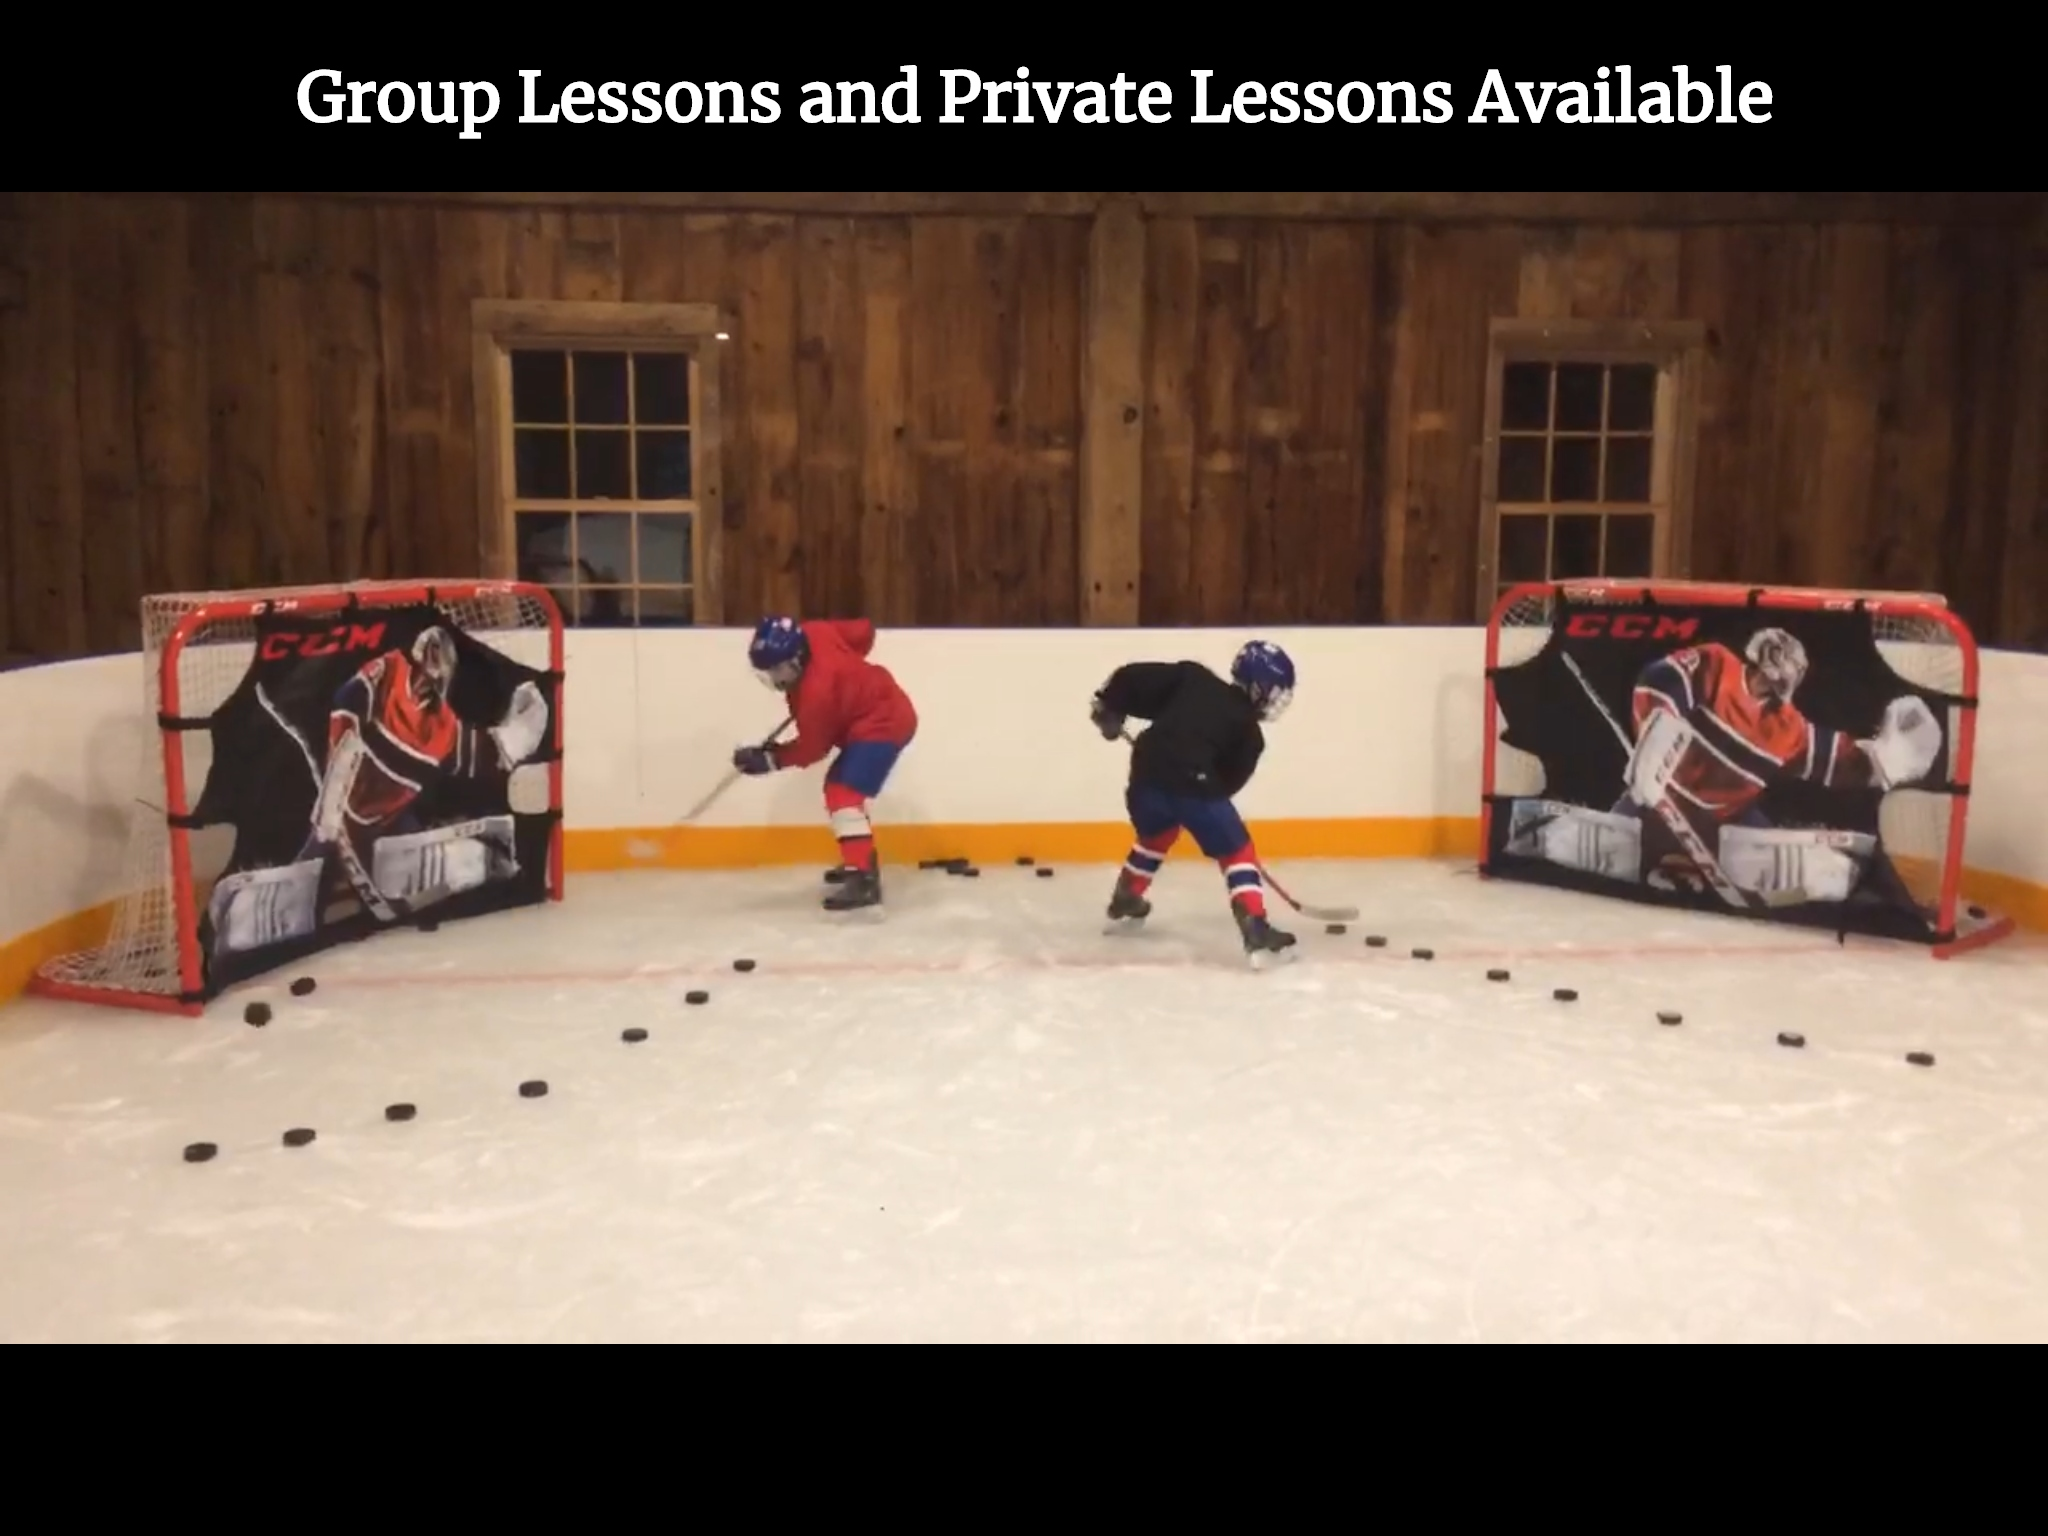 Group Lessons and Private Lessons with John Tripp